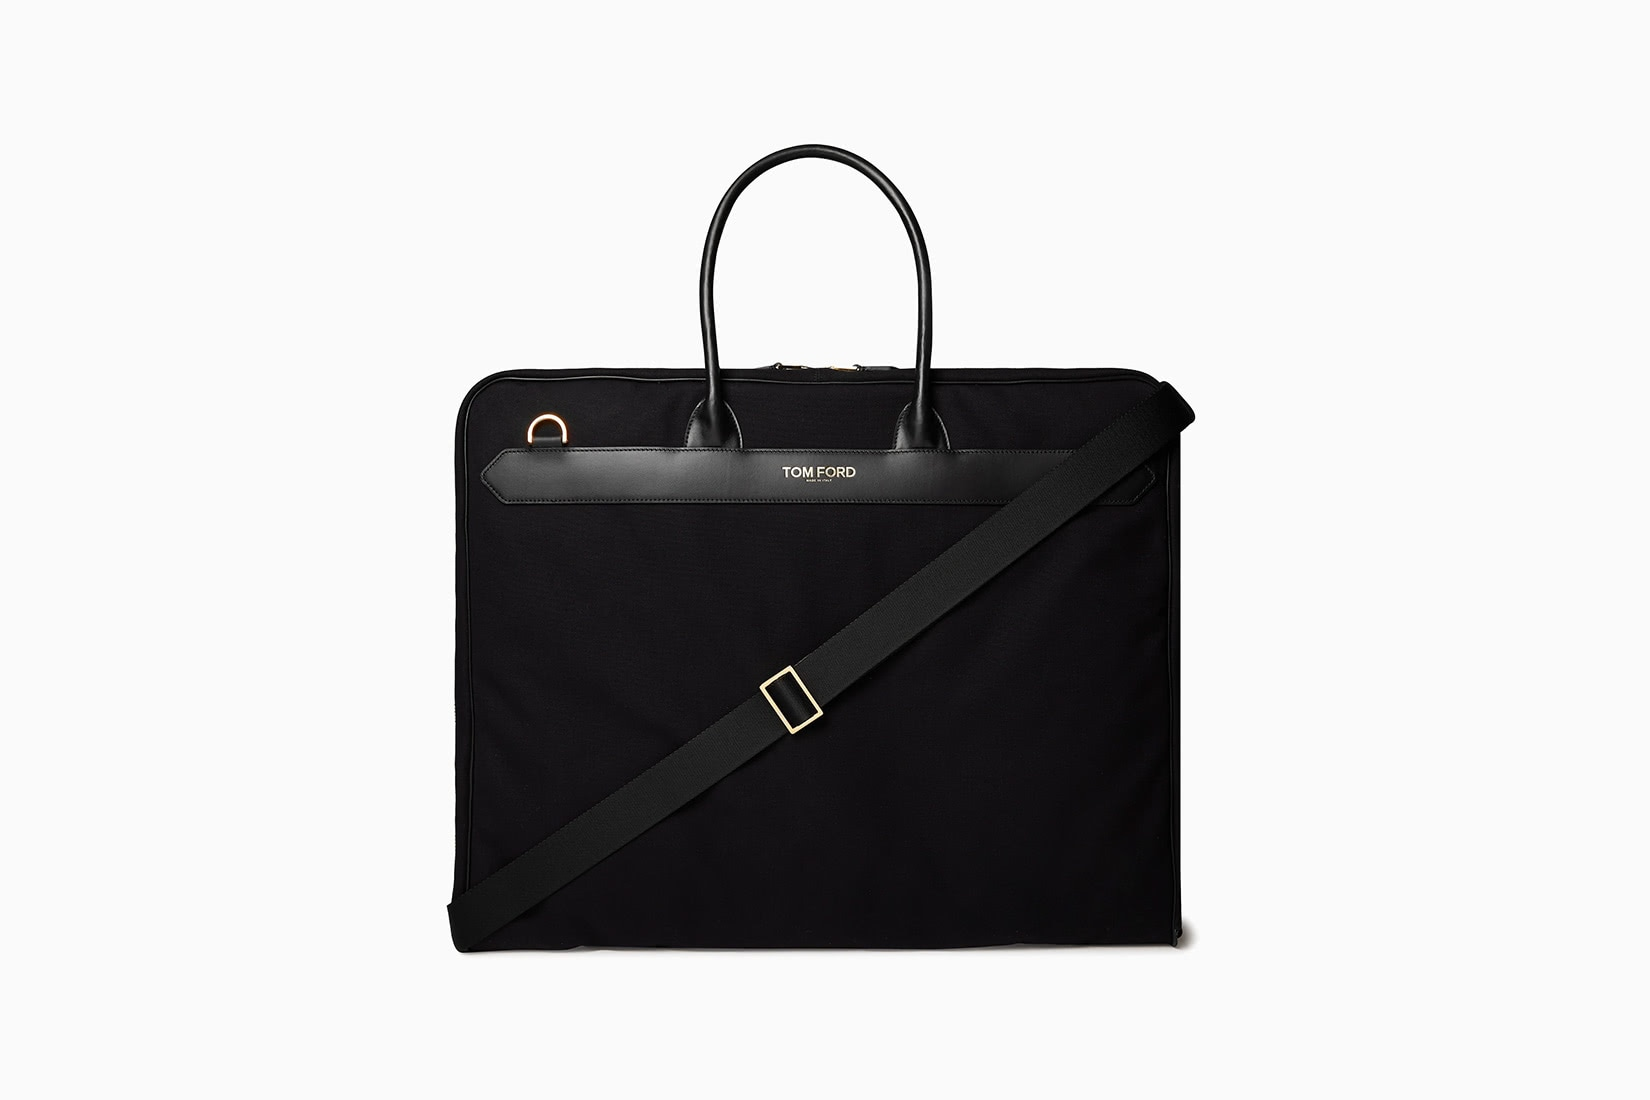 best garment bags leather tom ford review - Luxe Digital